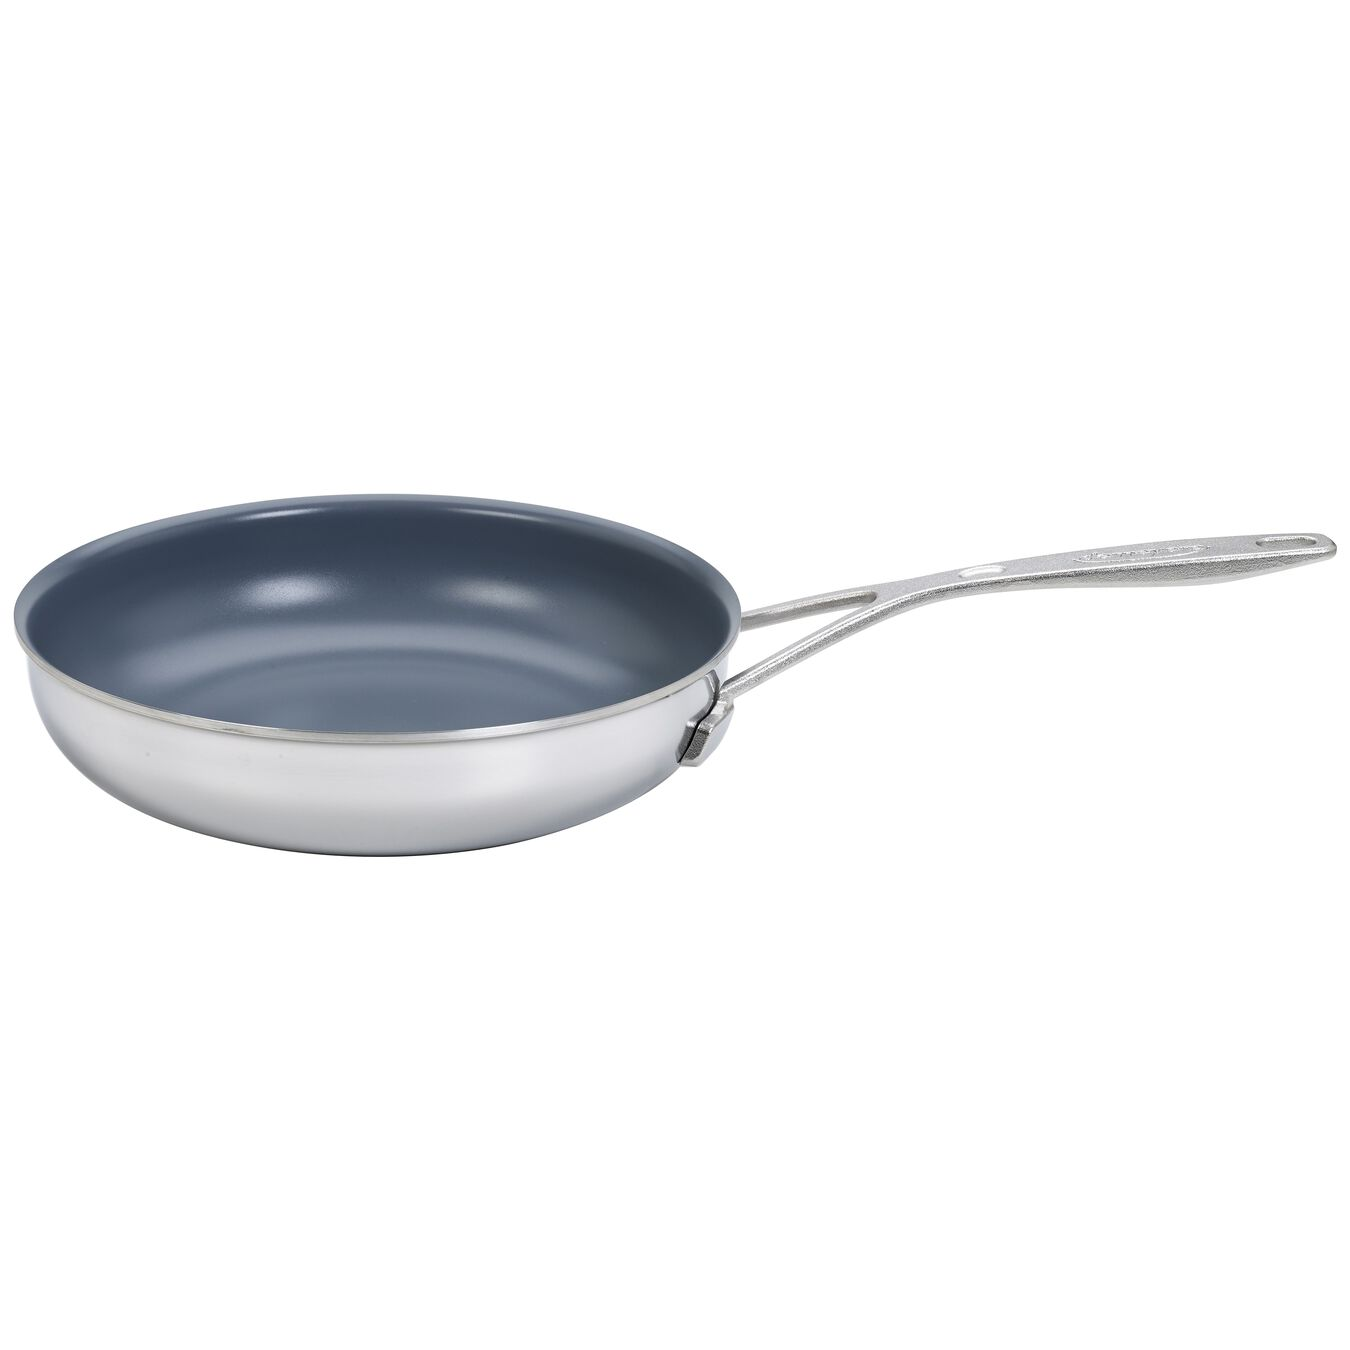 9.5-inch, 18/10 Stainless Steel, Non-stick, Ceramic, Frying pan,,large 1